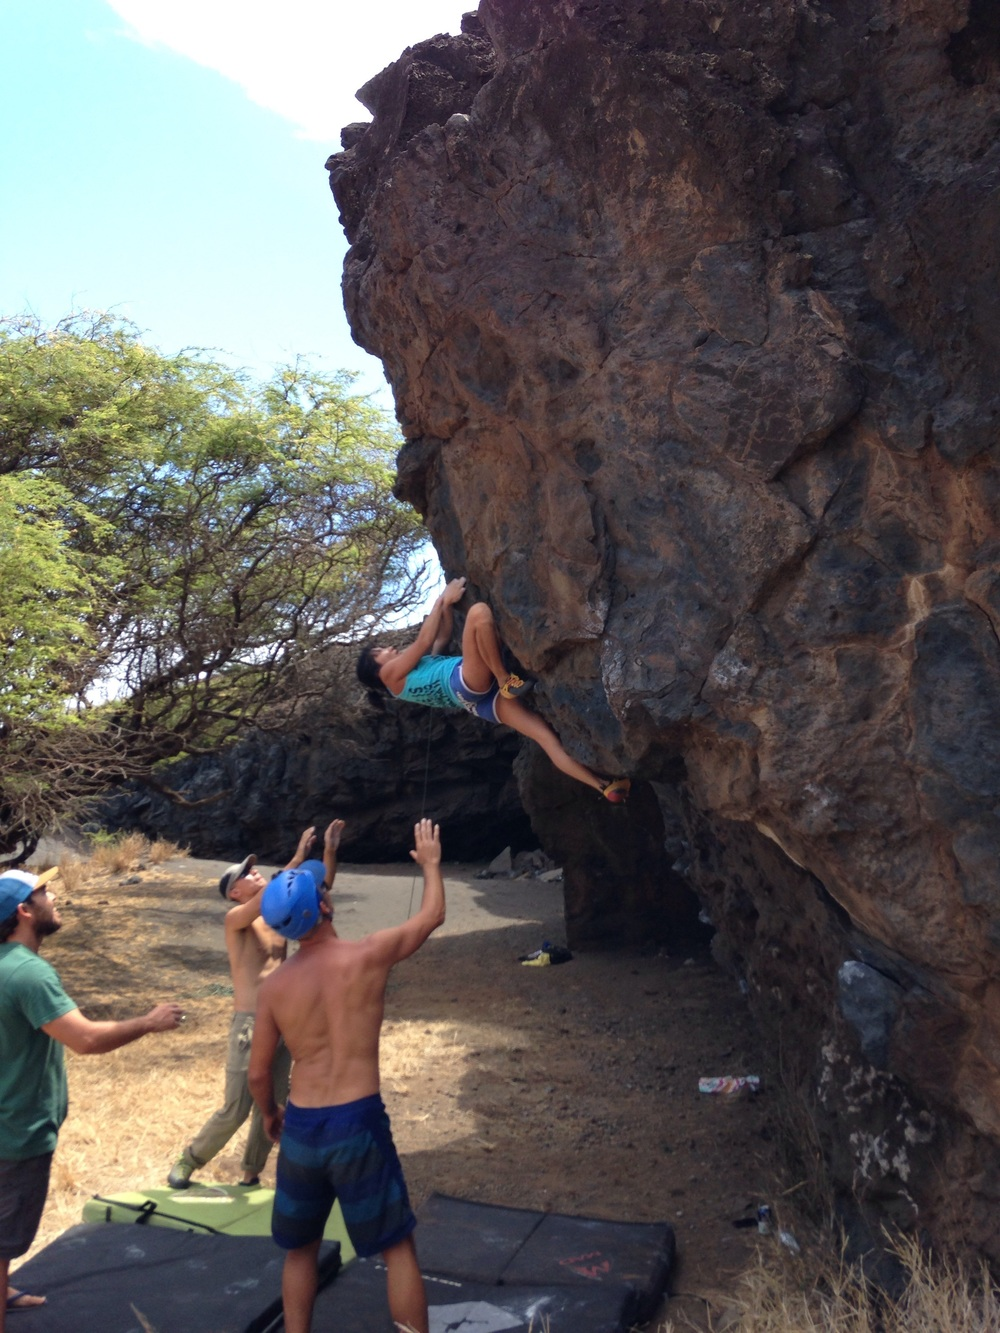 Wai Yi on a fun V4ish arête a stone's throw from Piilani highway near PK. PC: Matt